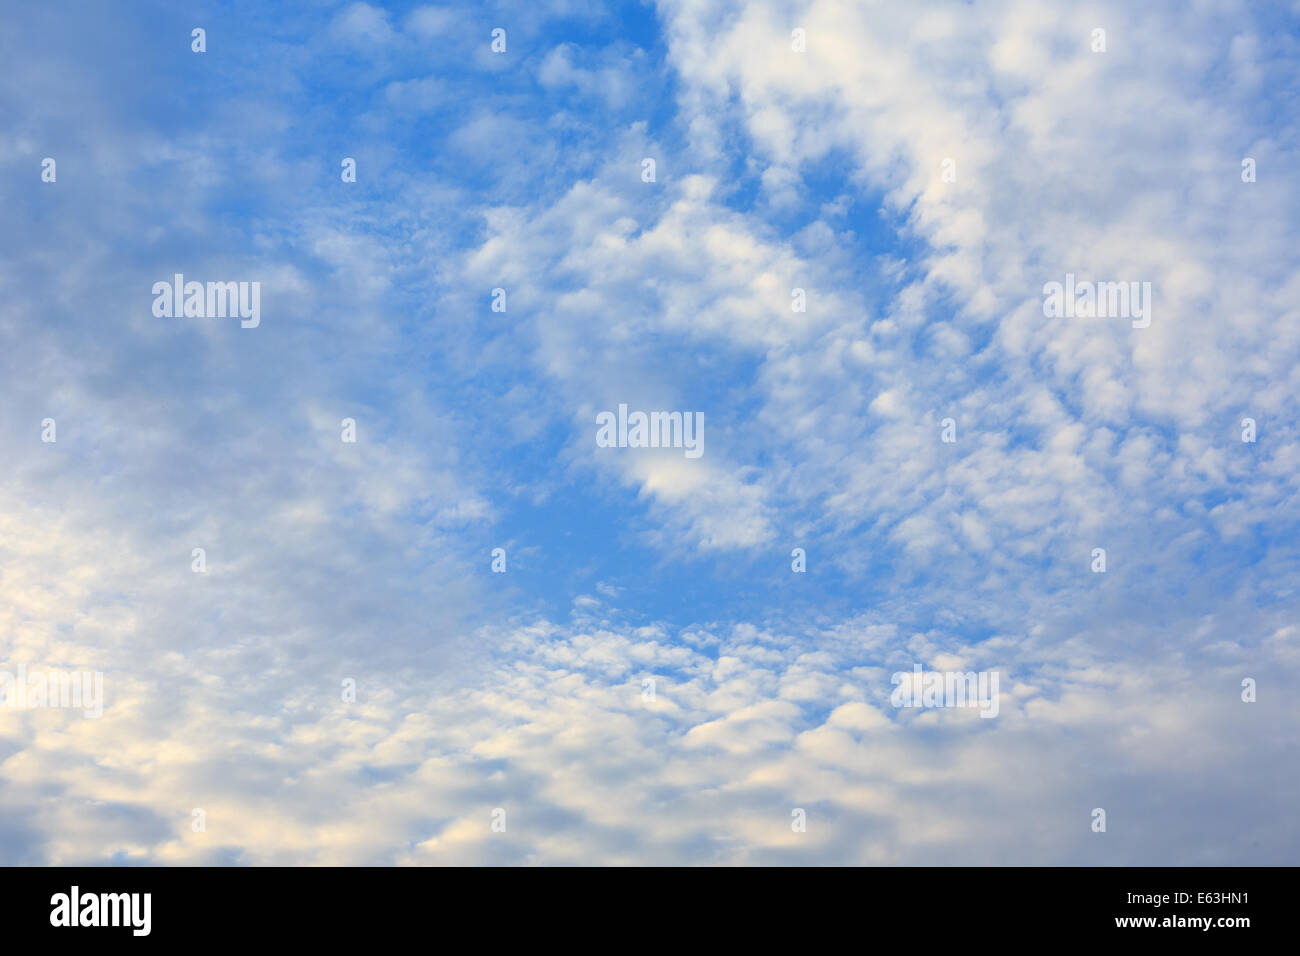 Autumn sky with fluffy clouds background - Stock Image